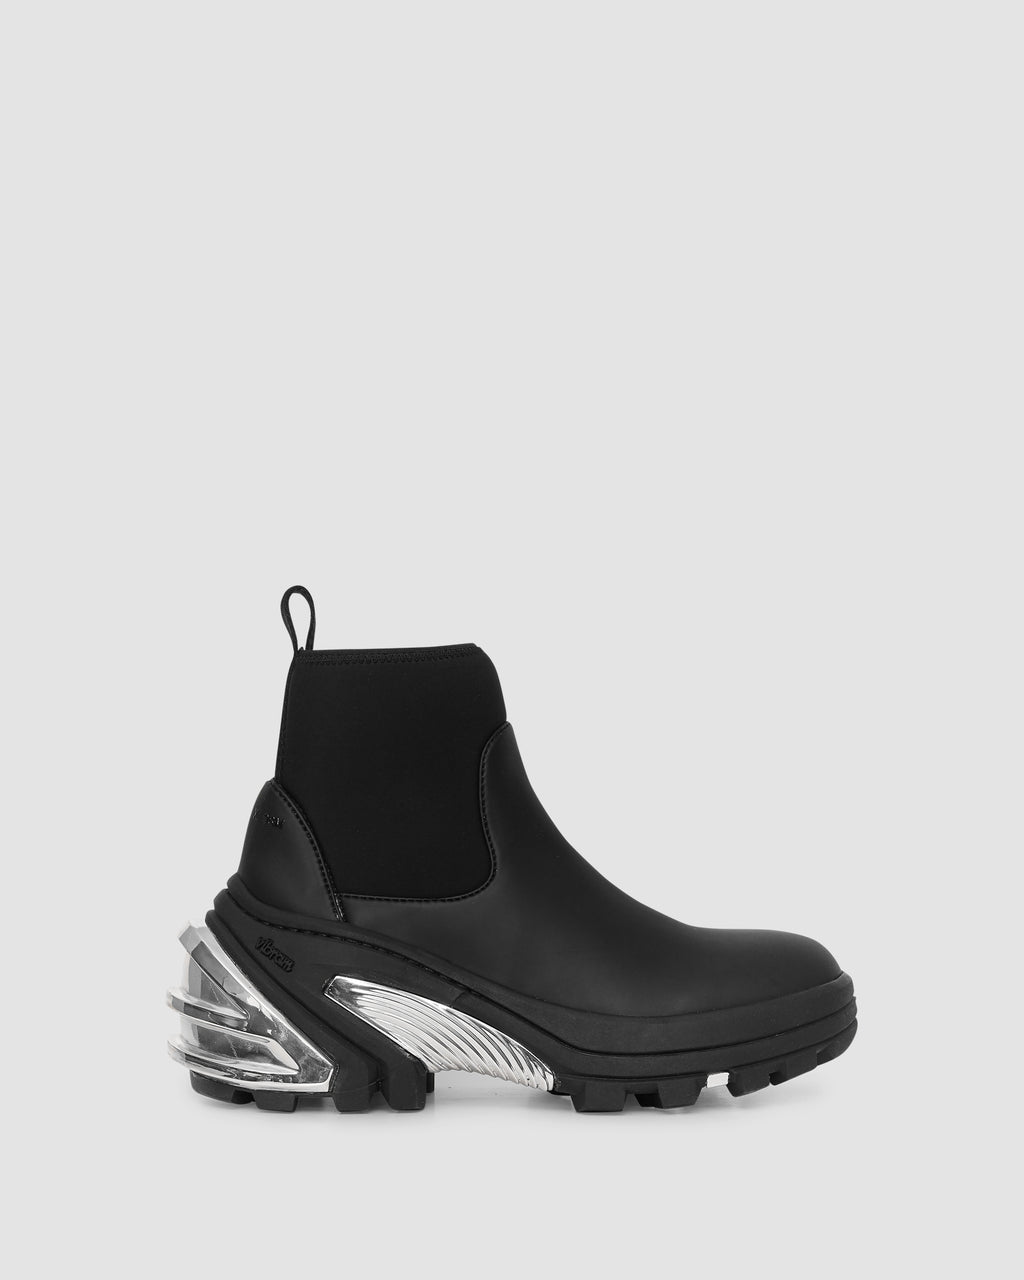 1017 ALYX 9SM | RUBBER BOOTS | Shoe | BLACK, BOOTS, Google Shopping, Man, S20, S20EXSH, Shoes, Silver, UNISEX, Woman